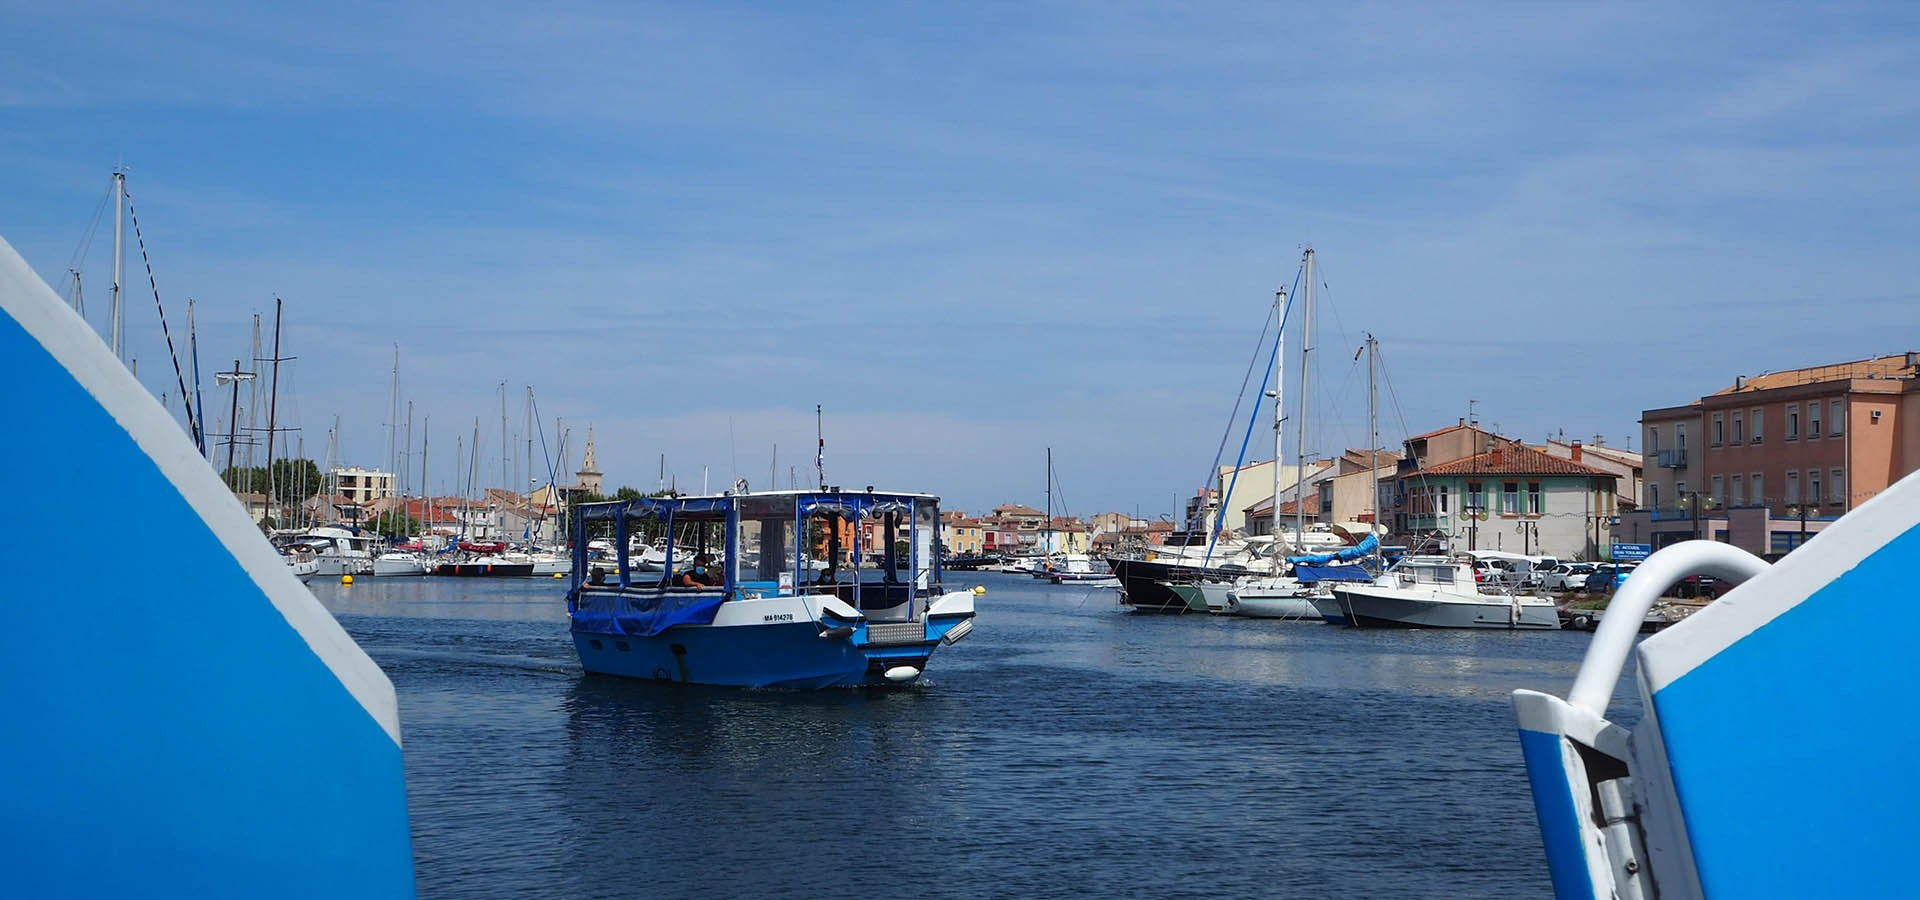 Activities offered by the Martigues Tourist Office